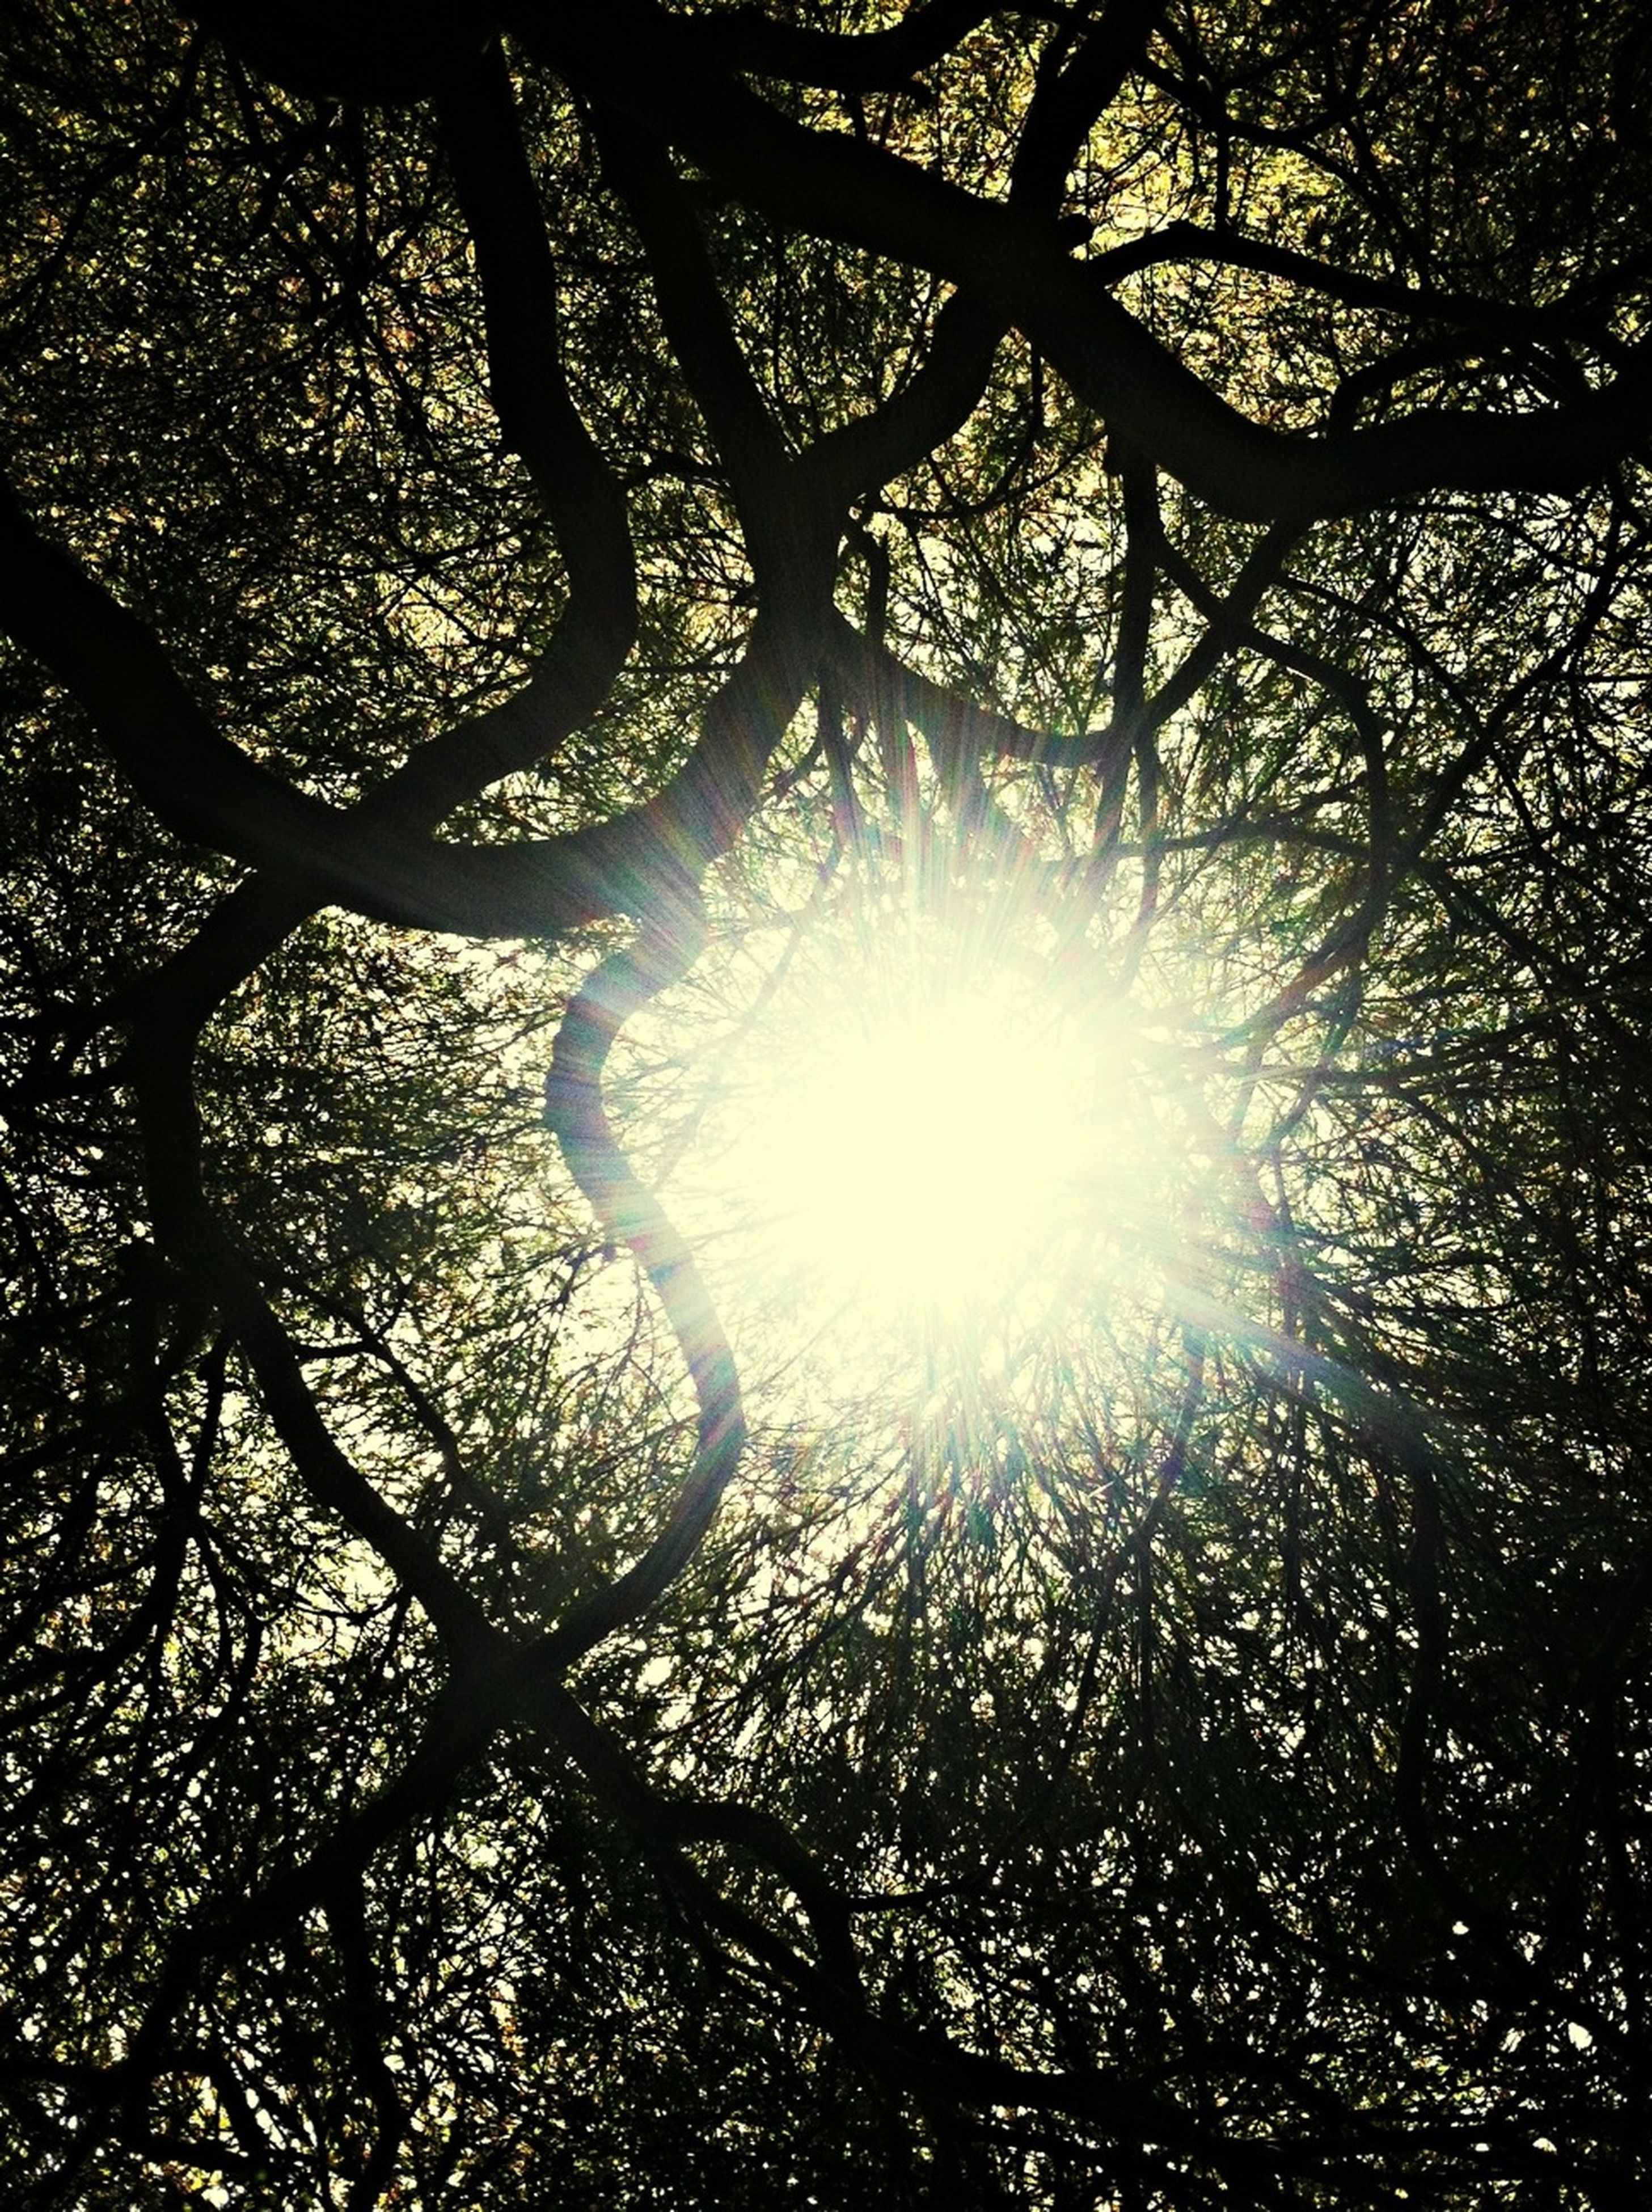 sun, tree, low angle view, sunbeam, sunlight, lens flare, branch, nature, tranquility, silhouette, beauty in nature, bright, back lit, backgrounds, full frame, growth, streaming, tree trunk, shiny, no people